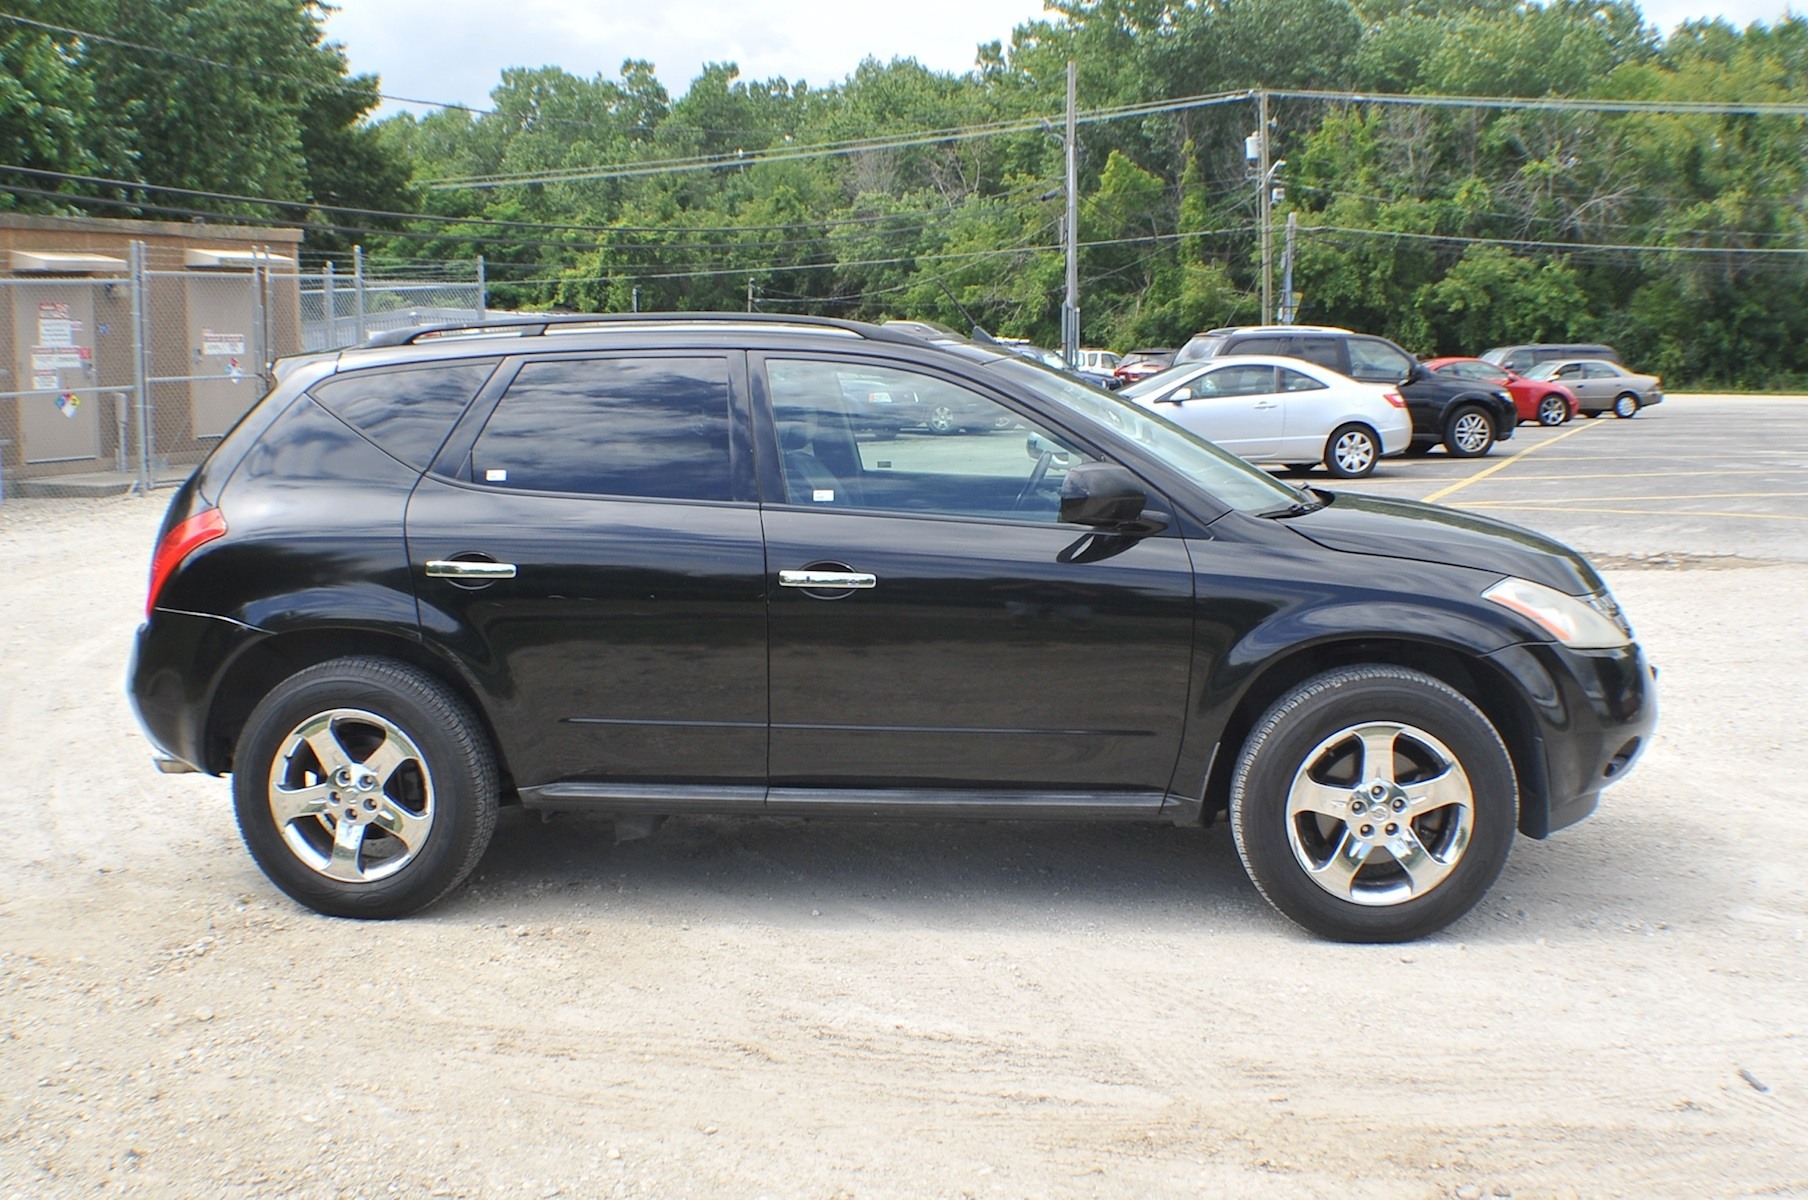 2005 Nissan Murano SL Black AWD SUV Sale Bannockburn Barrington Beach Park